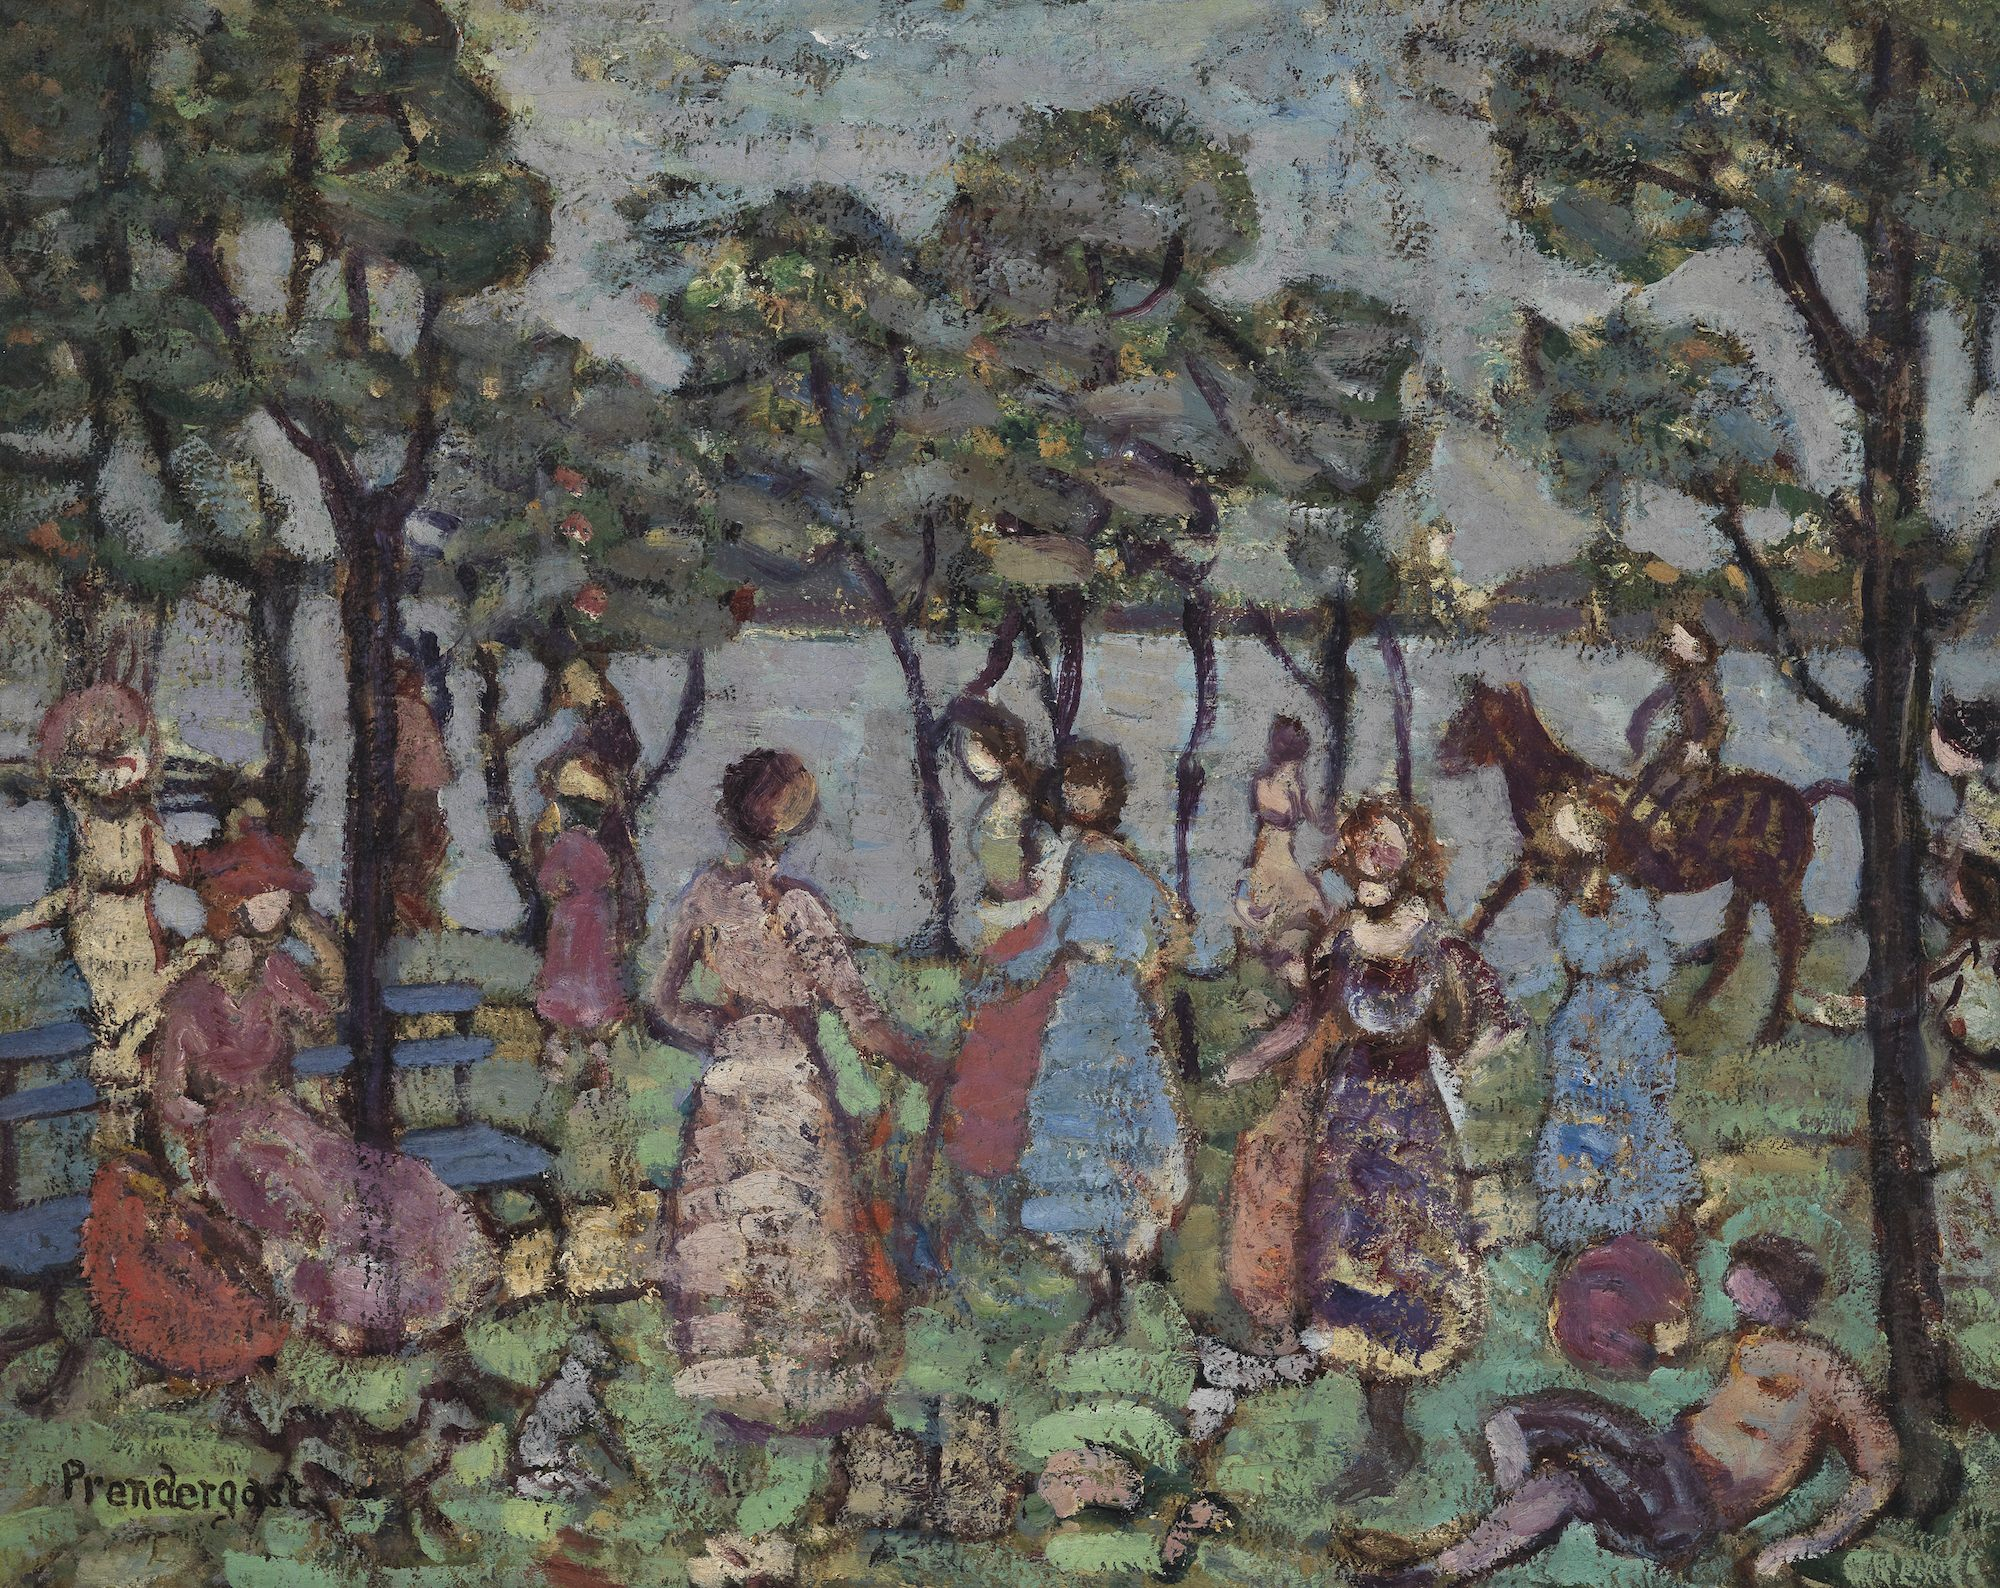 Maurice Brazil Prendergast (American, 1858–1924) Park by the Sea, c. 1914-1915. Oil on canvas. Gift of Mrs. Charles Prendergast, 86.18.39